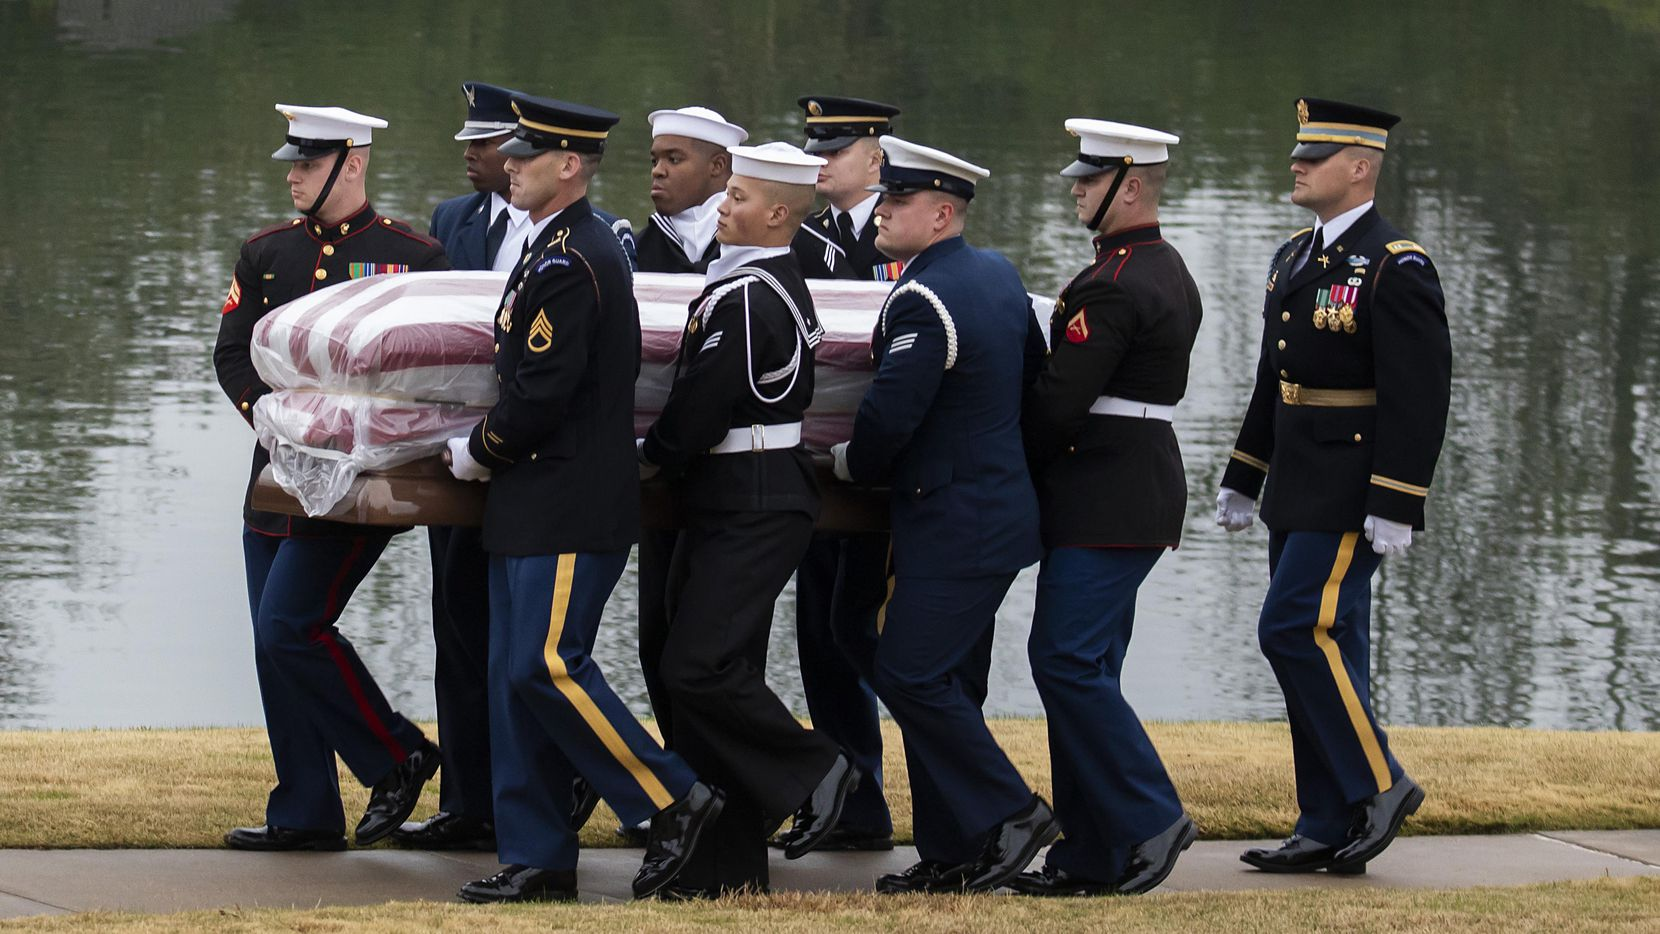 The flag-draped casket of President George H.W. Bush is carried to a burial plot close to his presidential library for internment on Thursday, Dec. 6, 2018, in College Station, Texas.